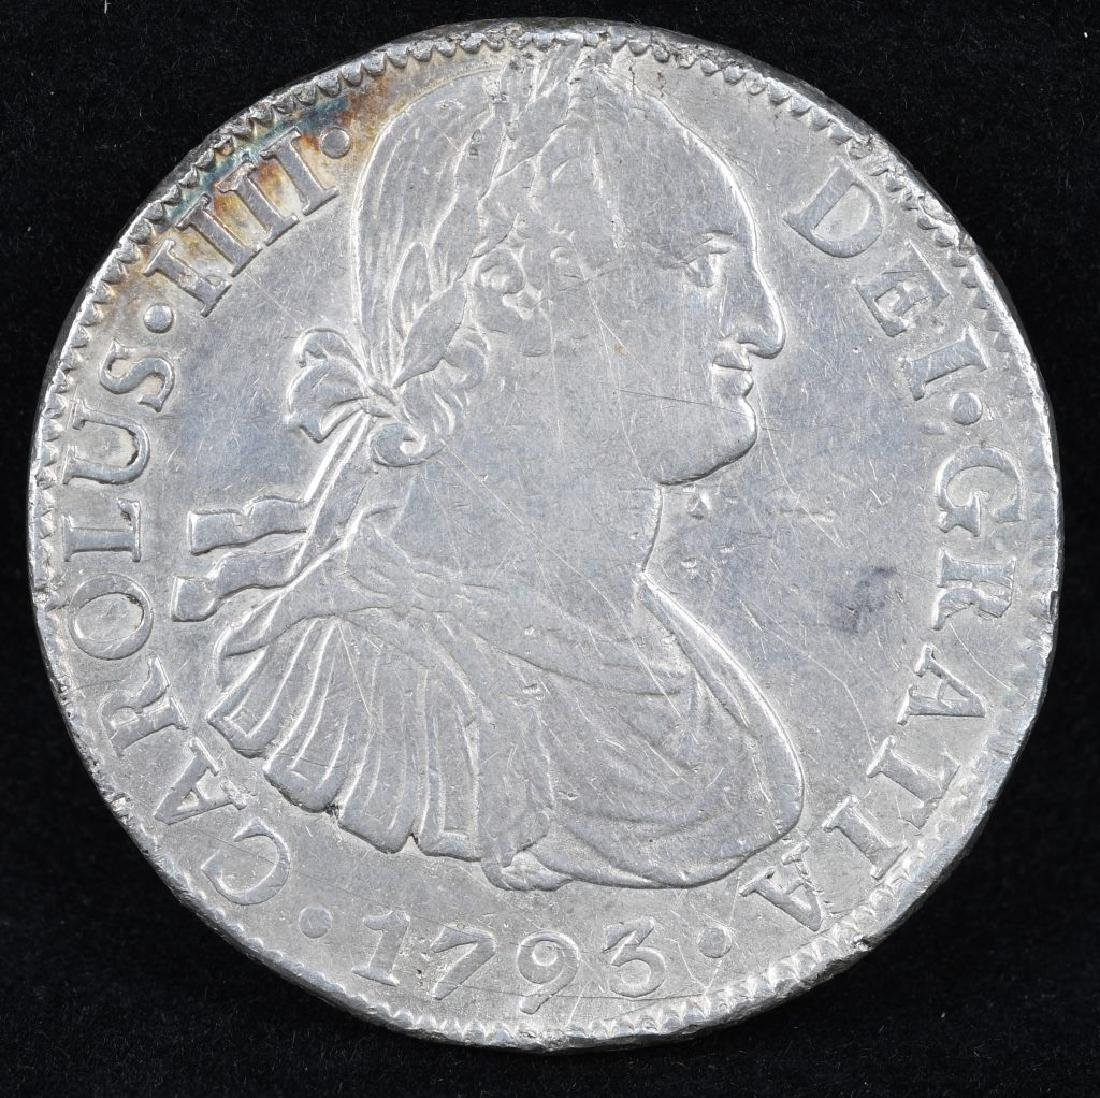 1793 SILVER 8 REALES